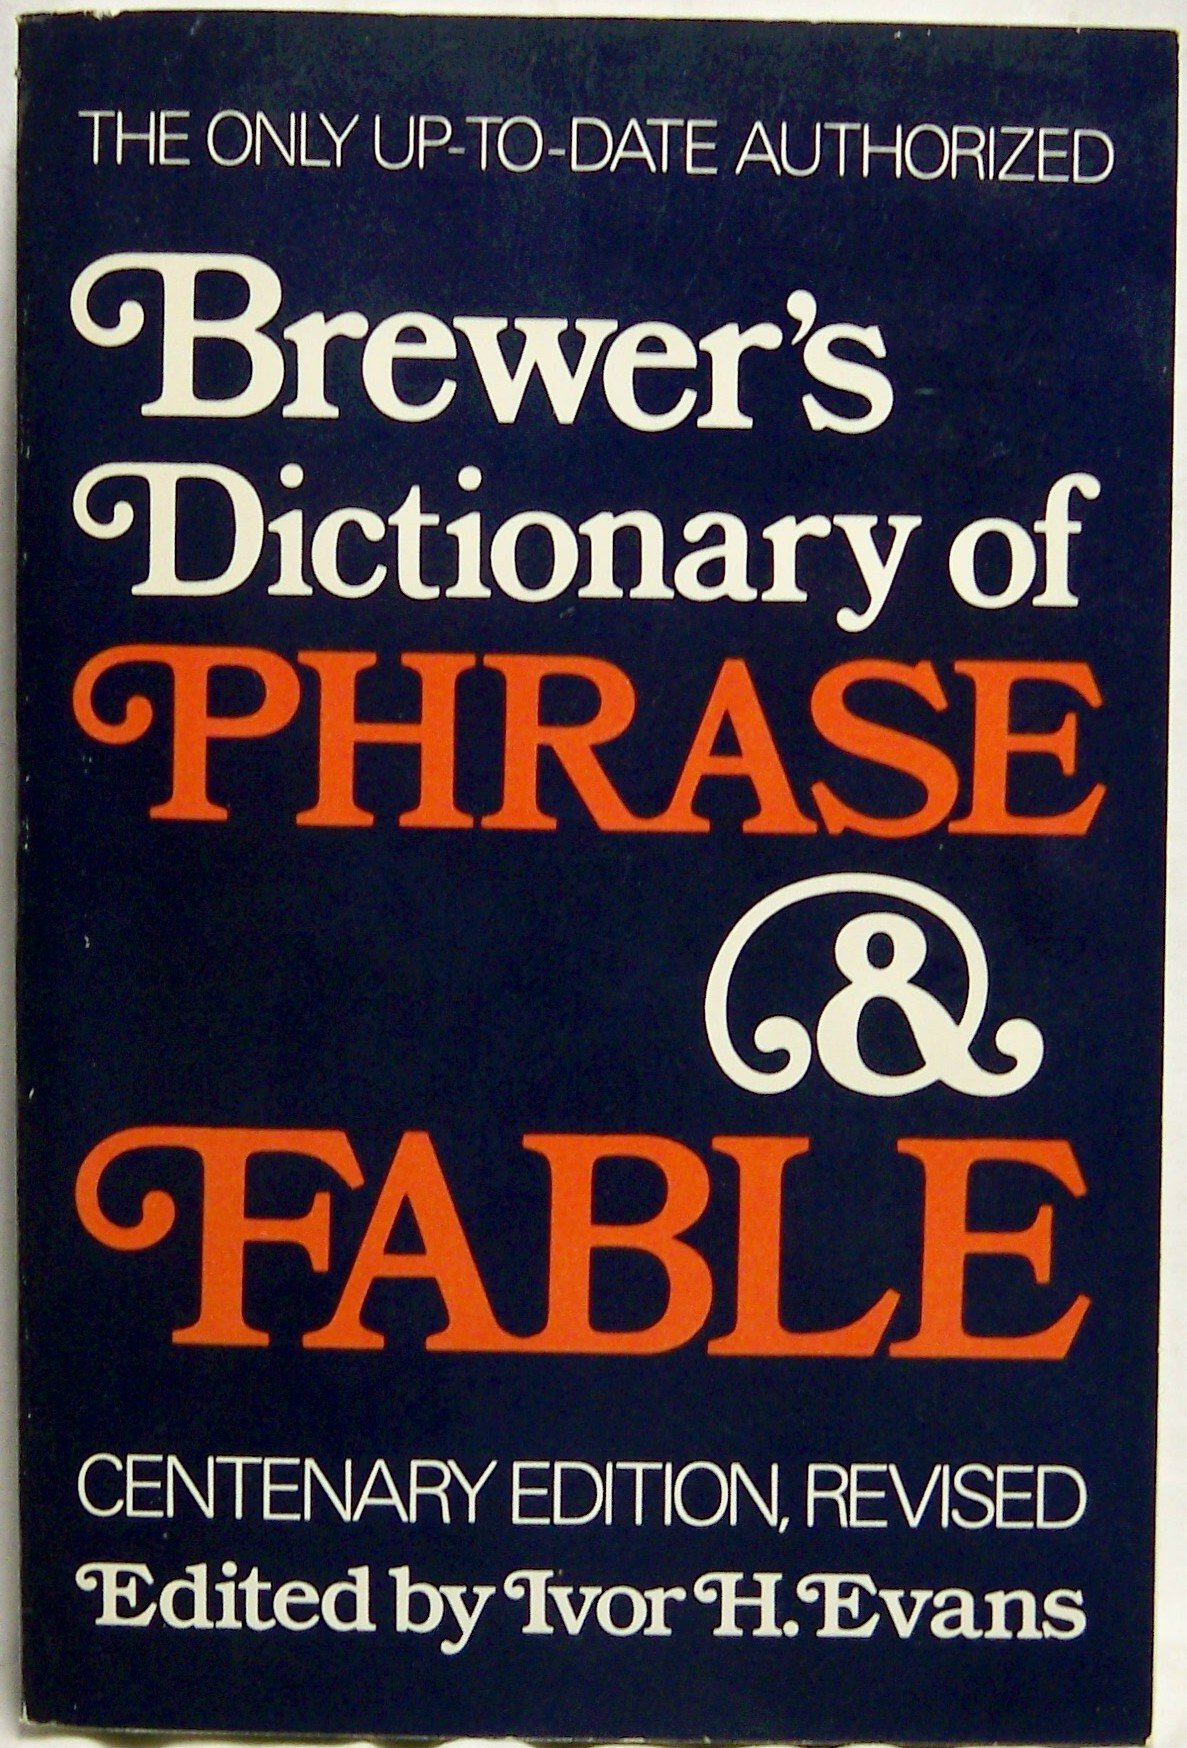 Brewers Dictionary of Phrase and Fable Edition, Brewers